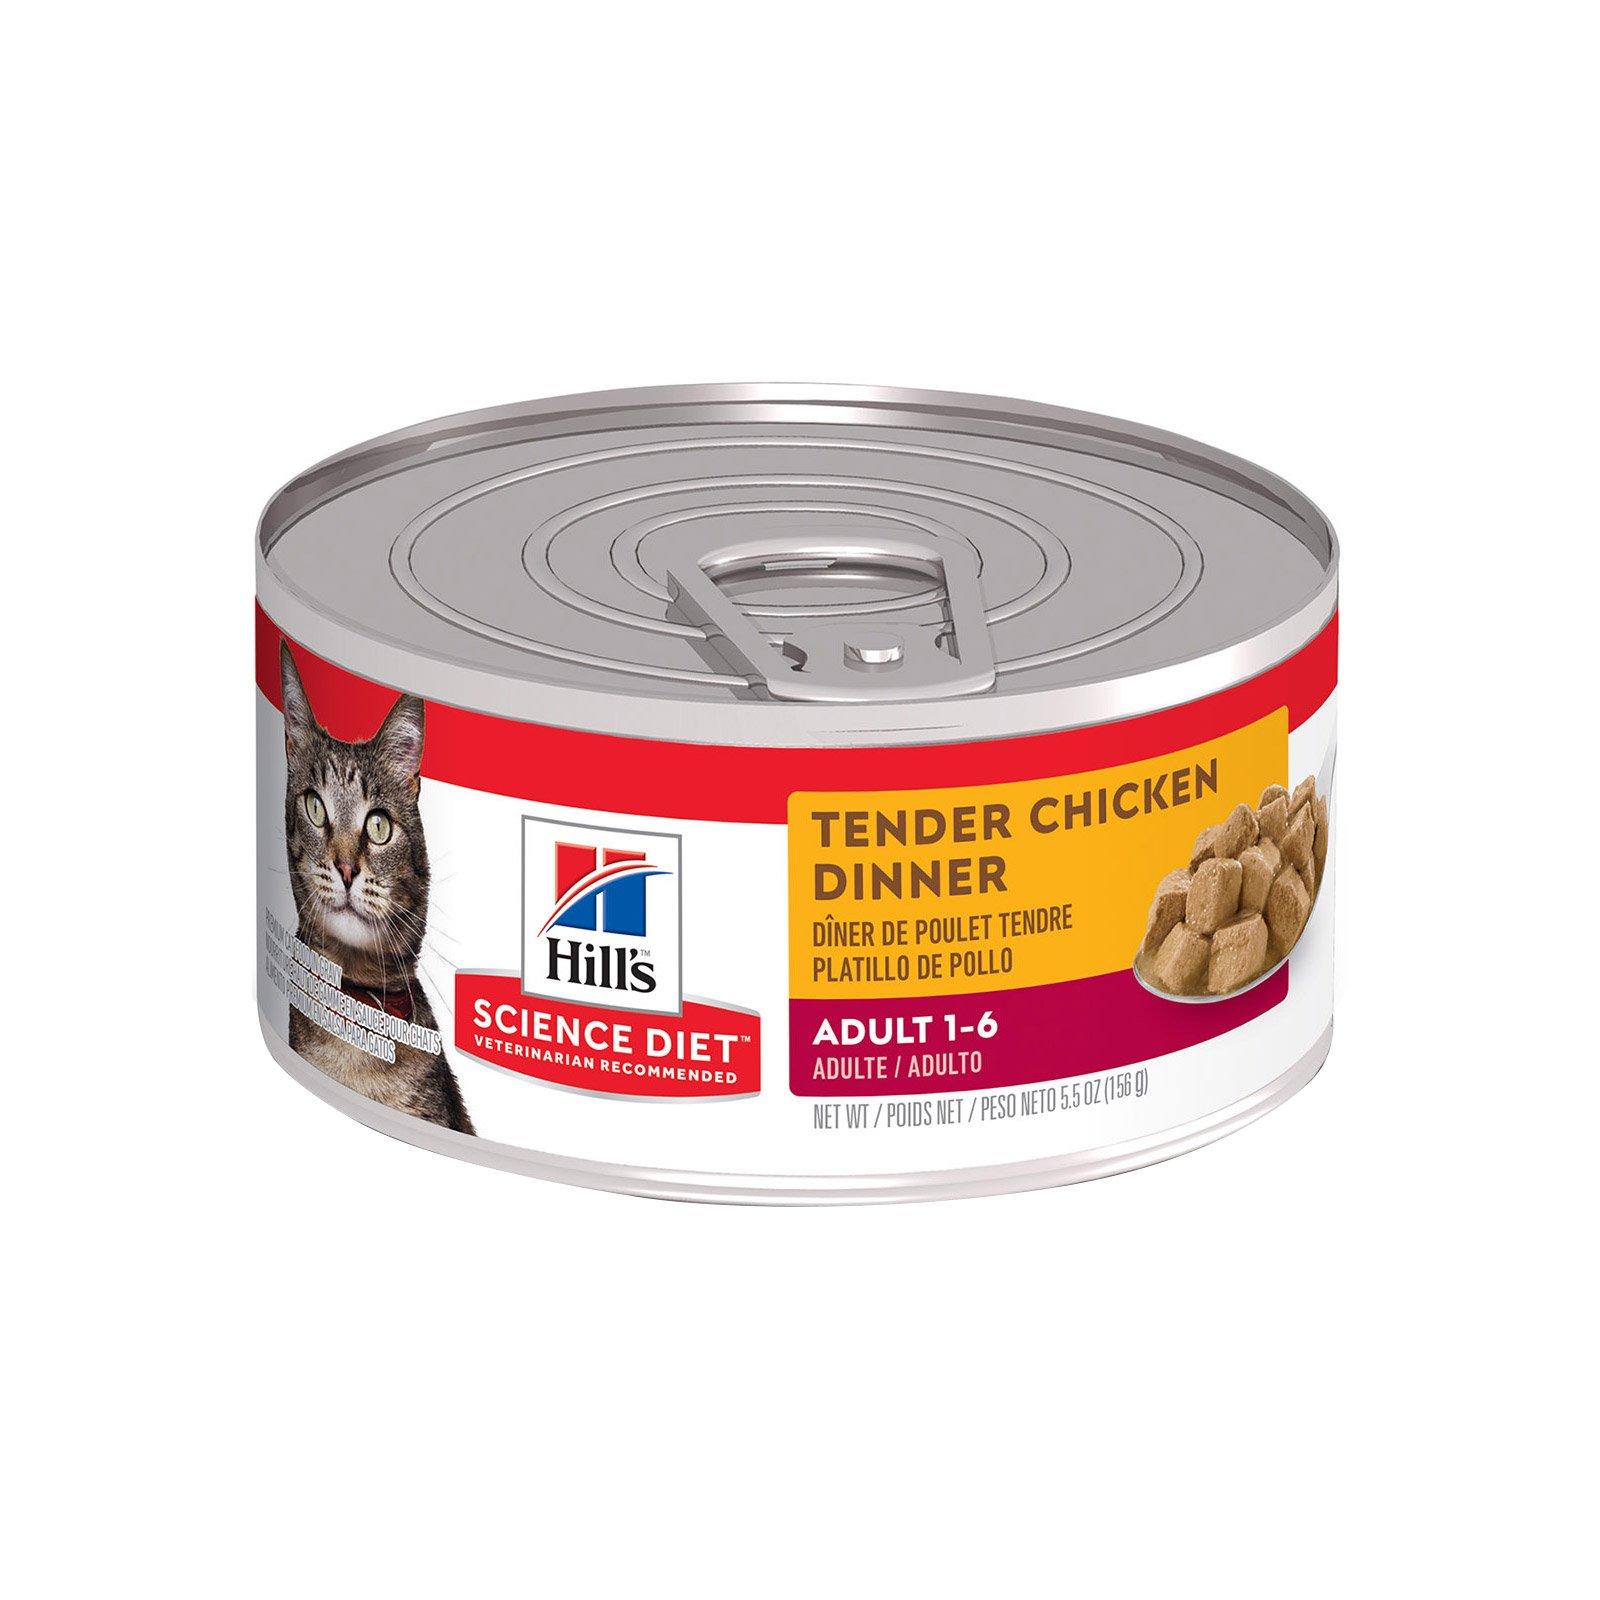 Hill's Science Diet Adult Tender Chicken Dinner Canned Wet Cat Food 156 gm